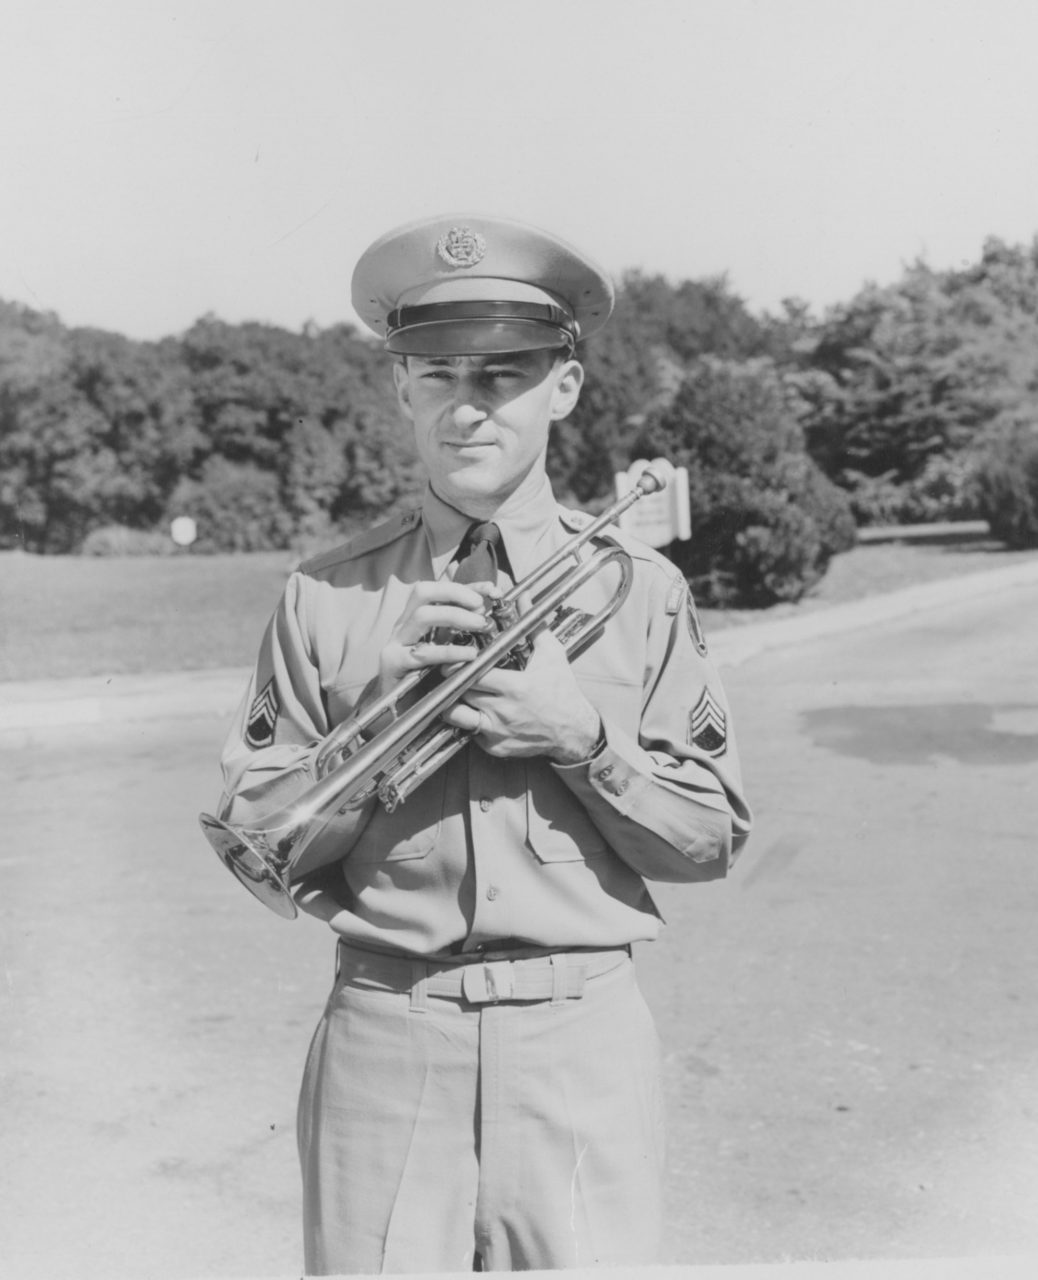 Tom kennedy us army claims service - Keith Clark In The 1950s At Fort Myer